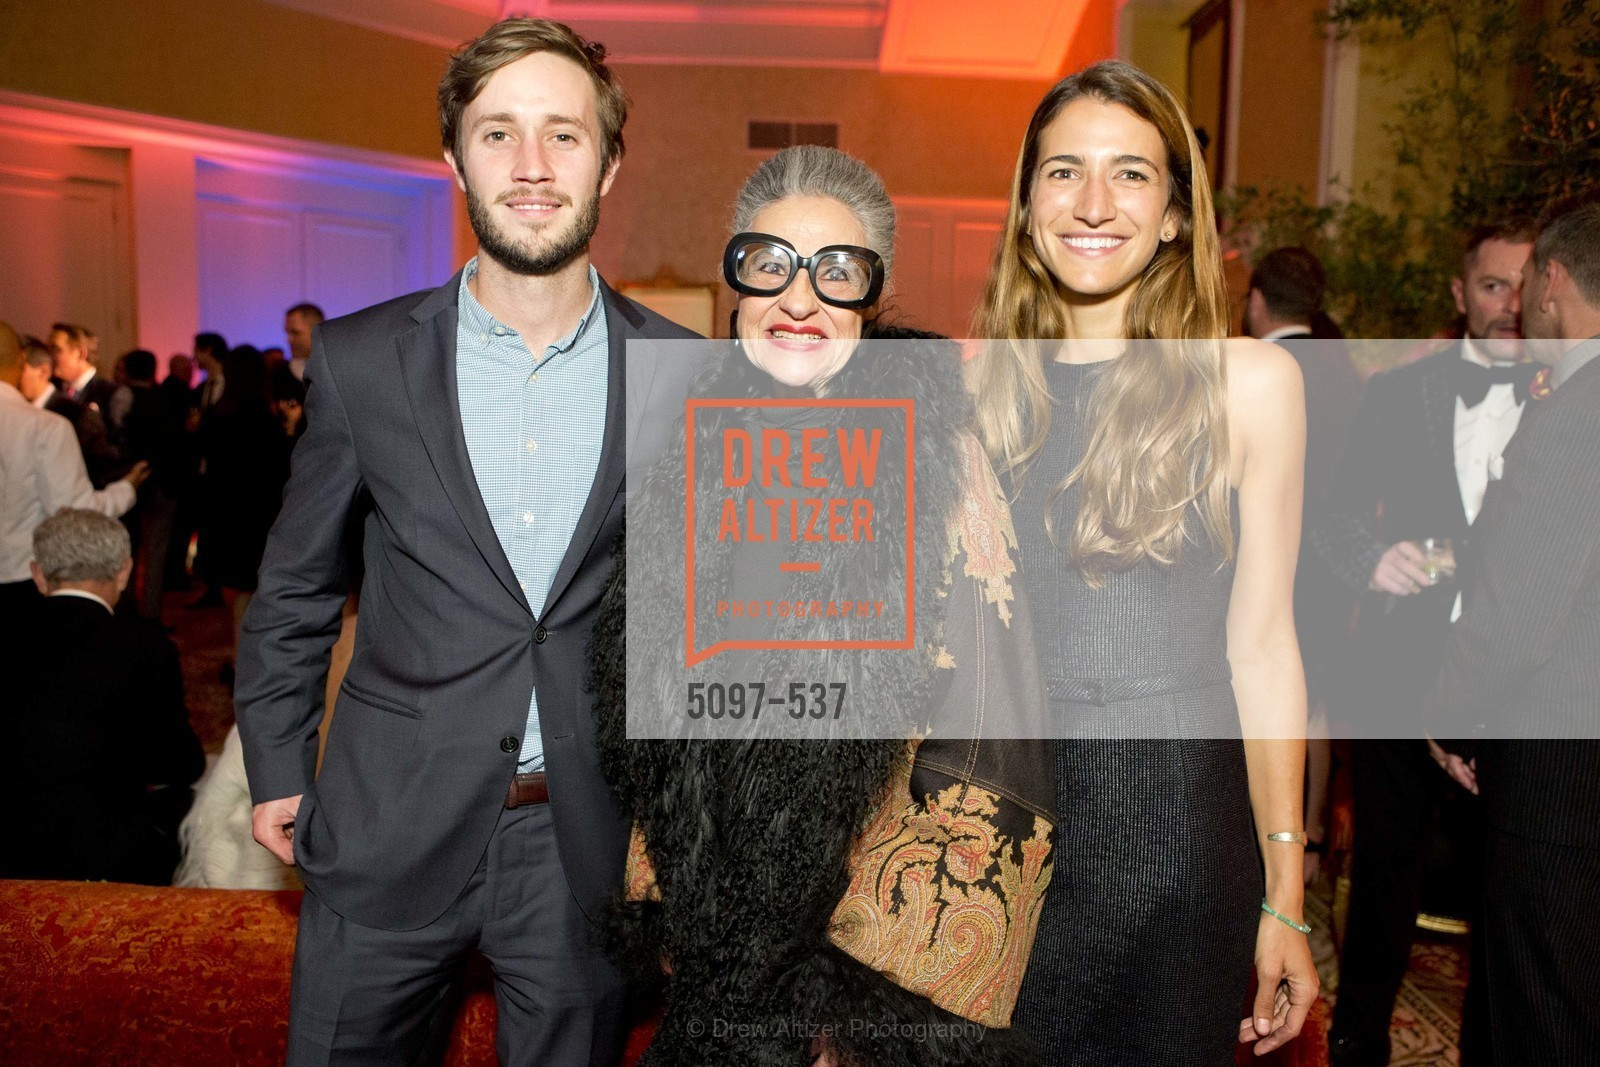 John Hammel, Joy Venterini Bianchi, Marie Deriggi, TOP OF THE MARK'S 75TH Anniversary Party, US, November 7th, 2014,Drew Altizer, Drew Altizer Photography, full-service agency, private events, San Francisco photographer, photographer california